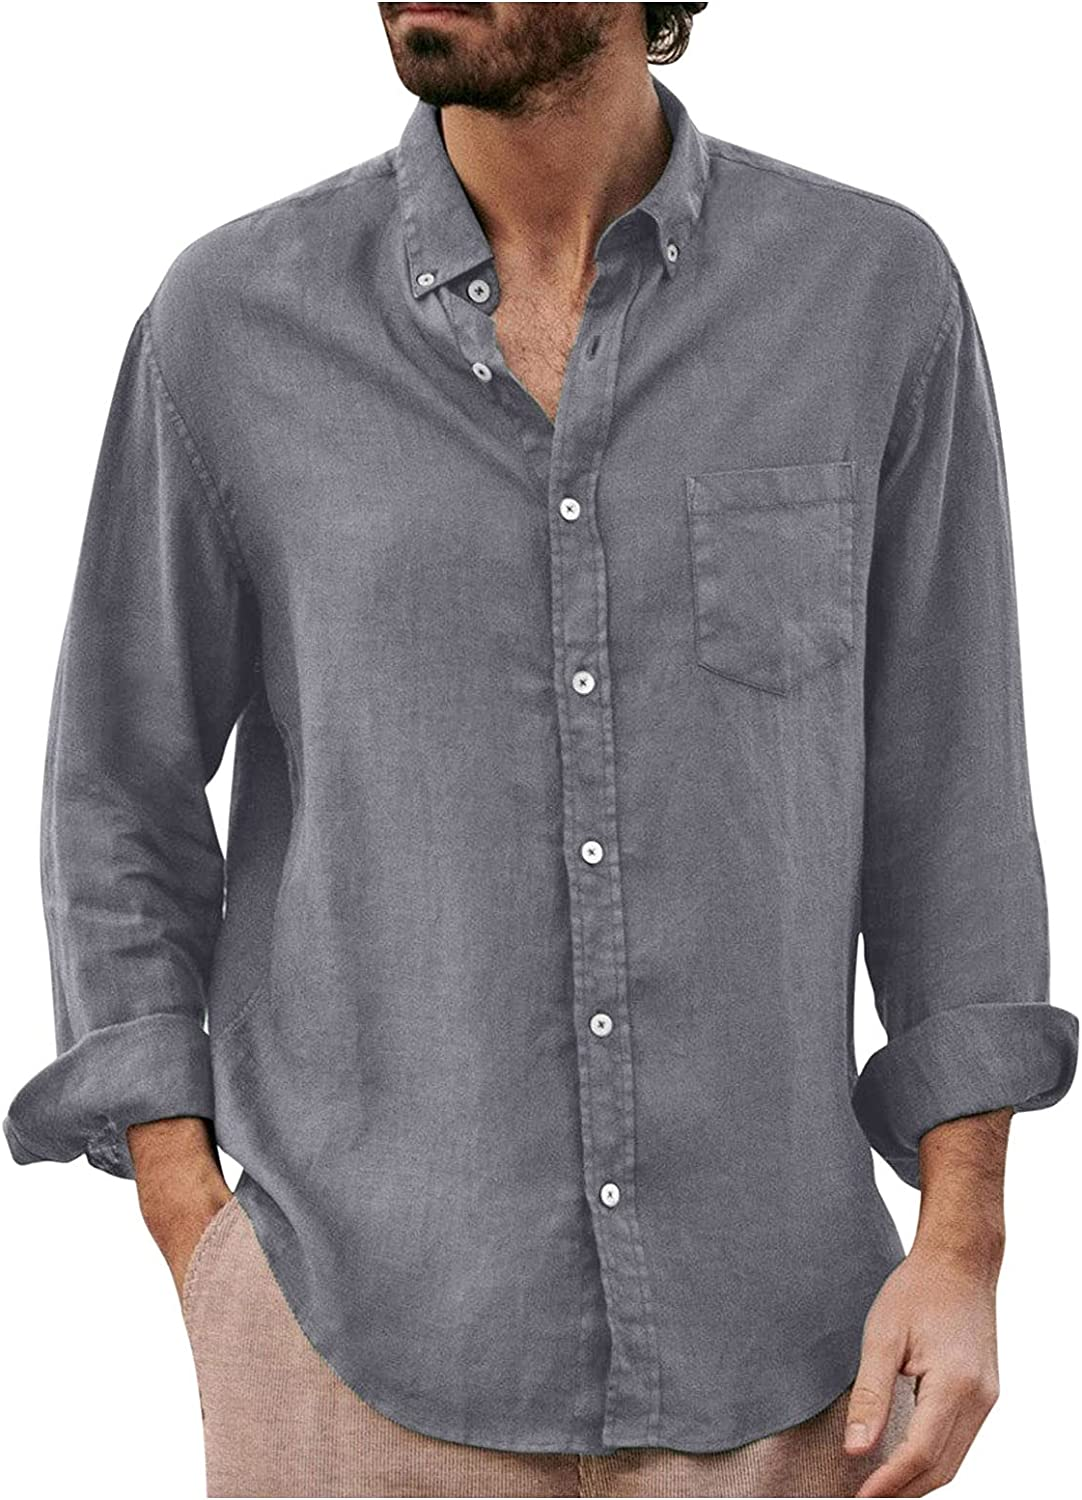 XUNFUN Men's Casual Button Down Shirts Loose Fit Summer Vintage Shirt Solid Color Long Sleeve Cotton Linen Tops Blouse